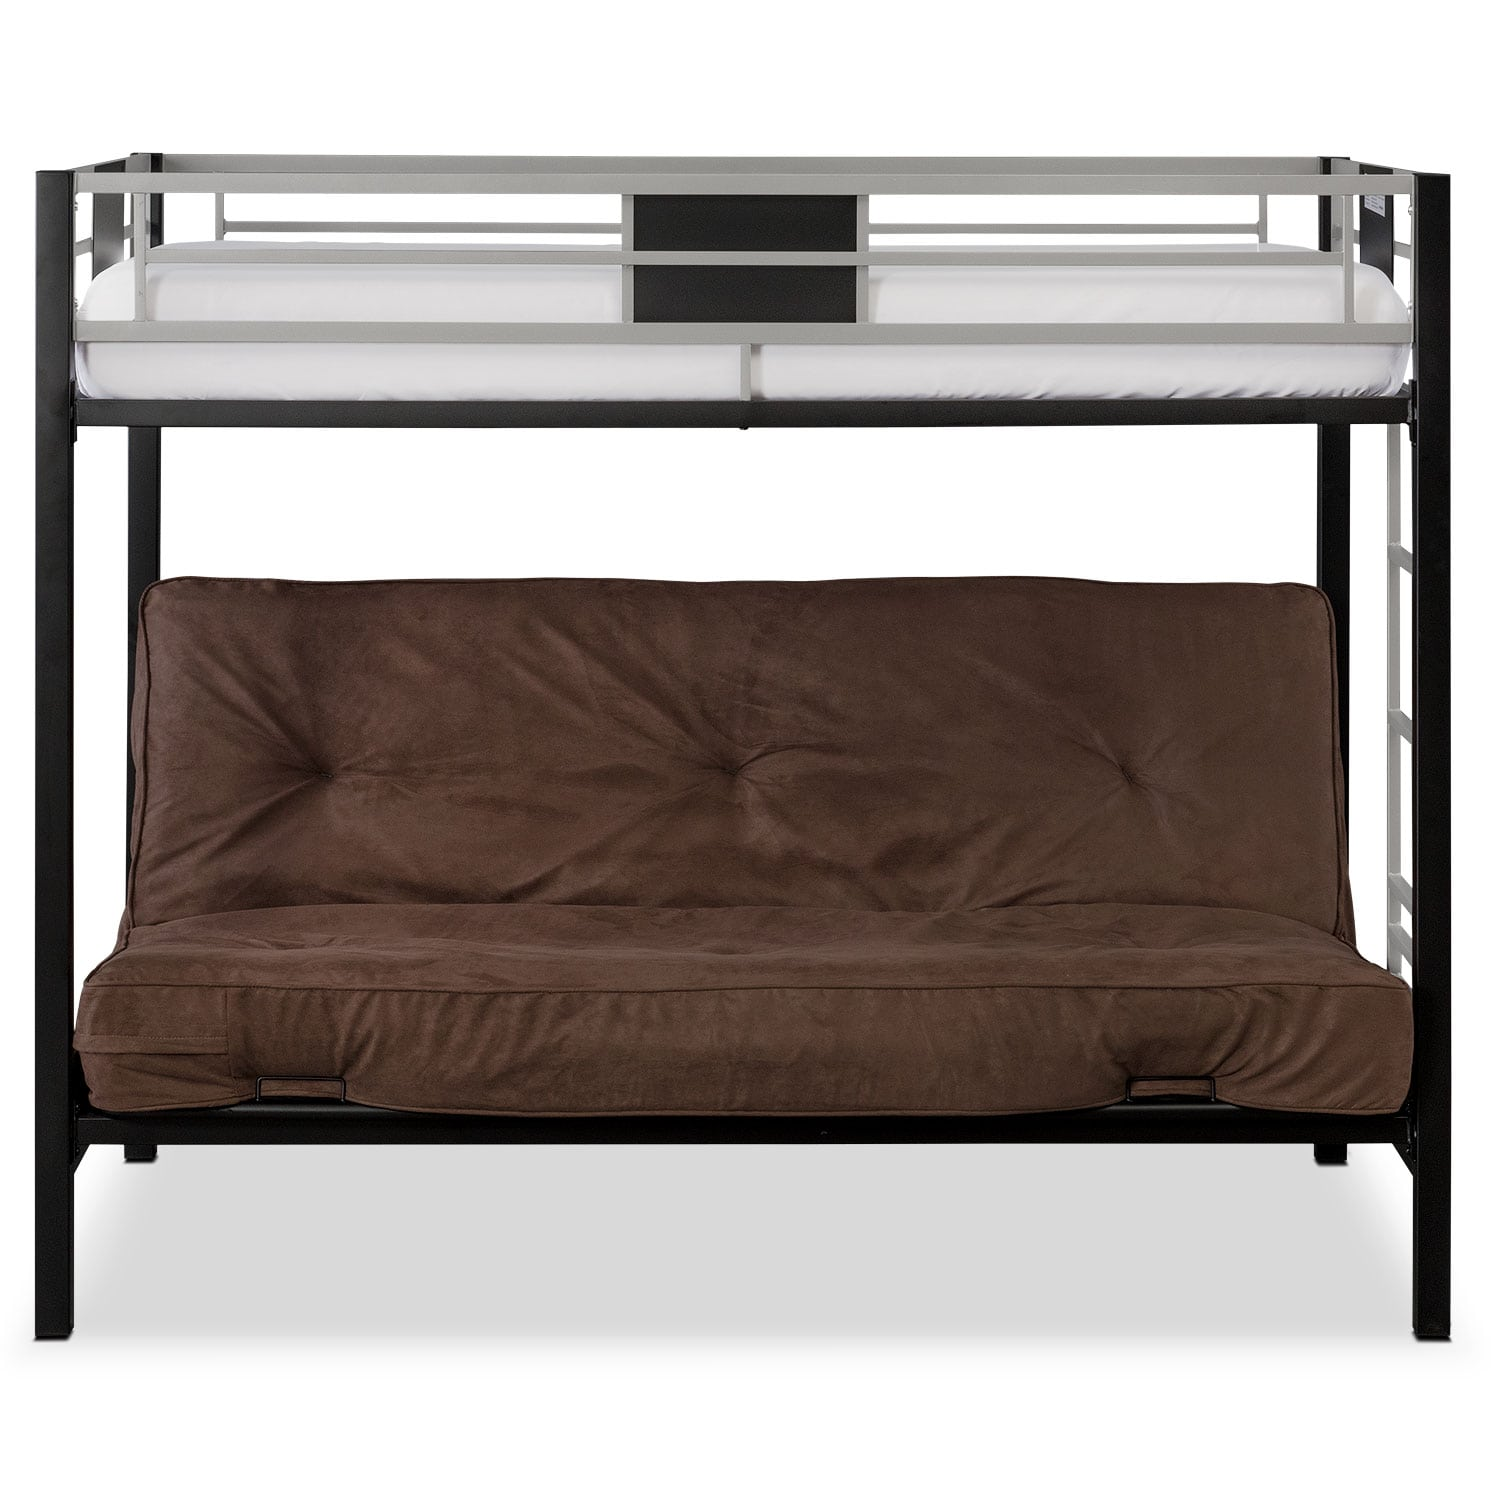 Samba Youth Twin Full Futon Bunk Bed with Chocolate Futon Mattress